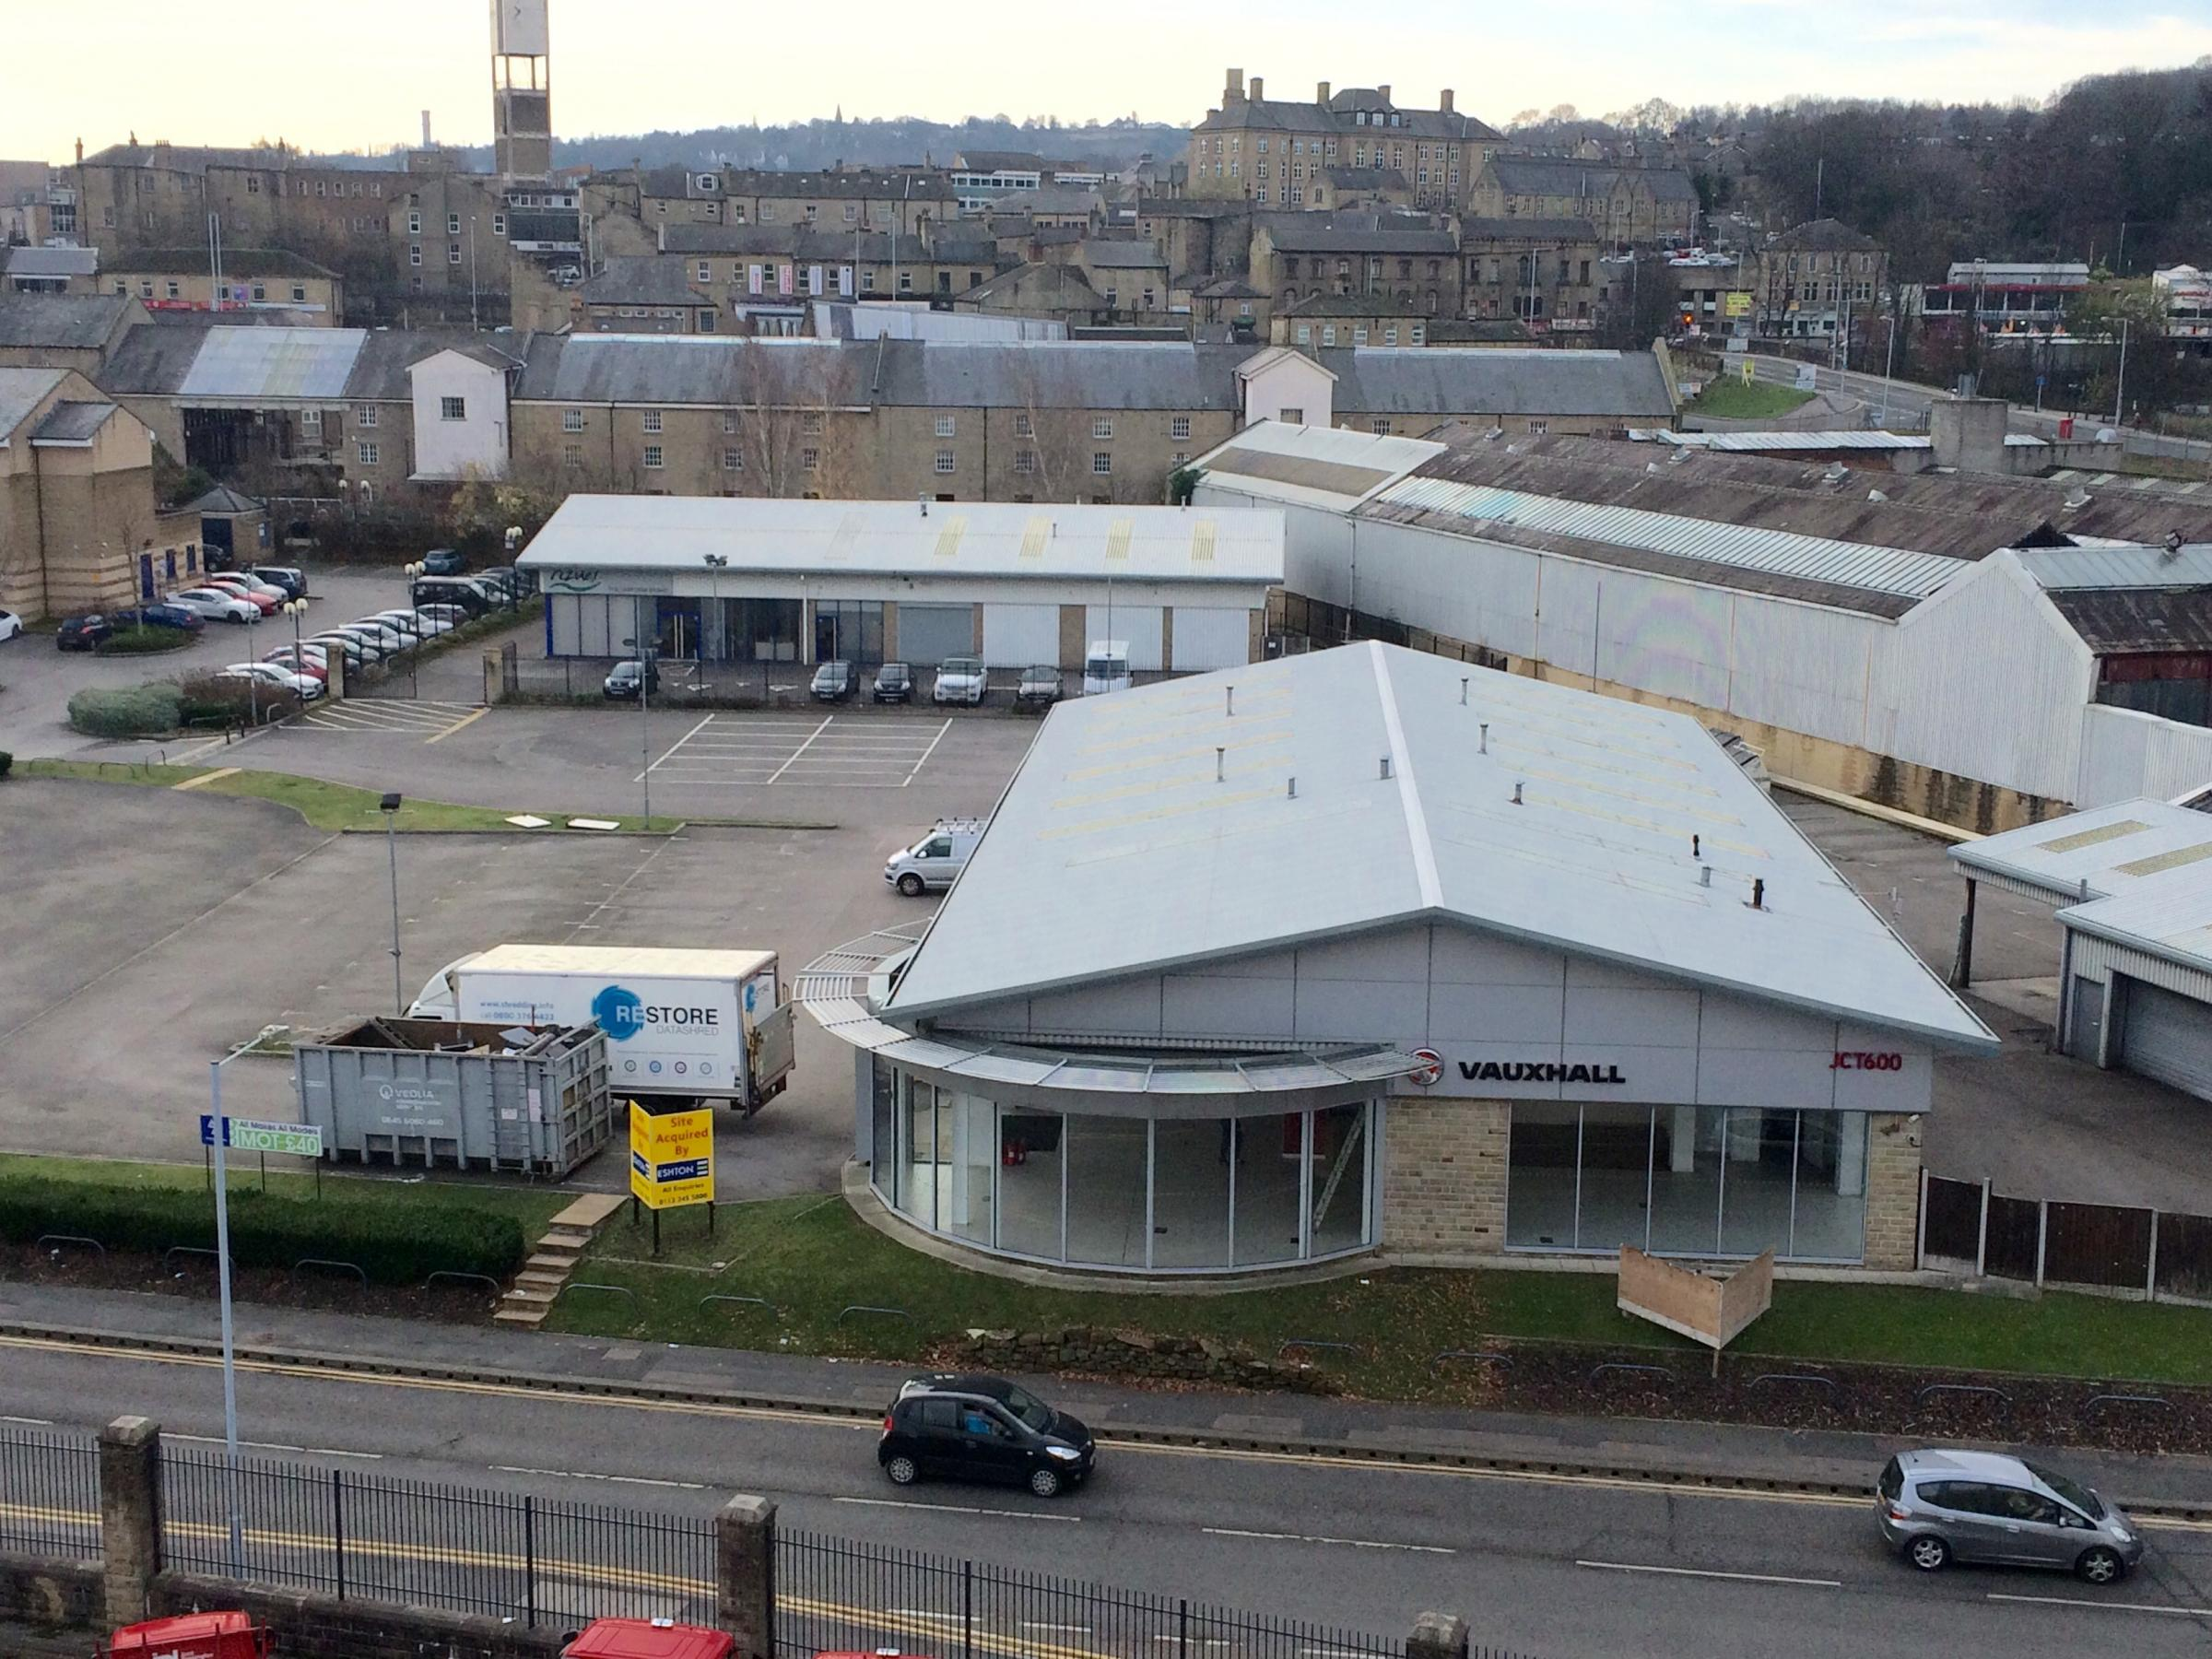 Business Development Zones Planned To Boost Employment In Bradford Keighley And Shipley Bradford Telegraph And Argus